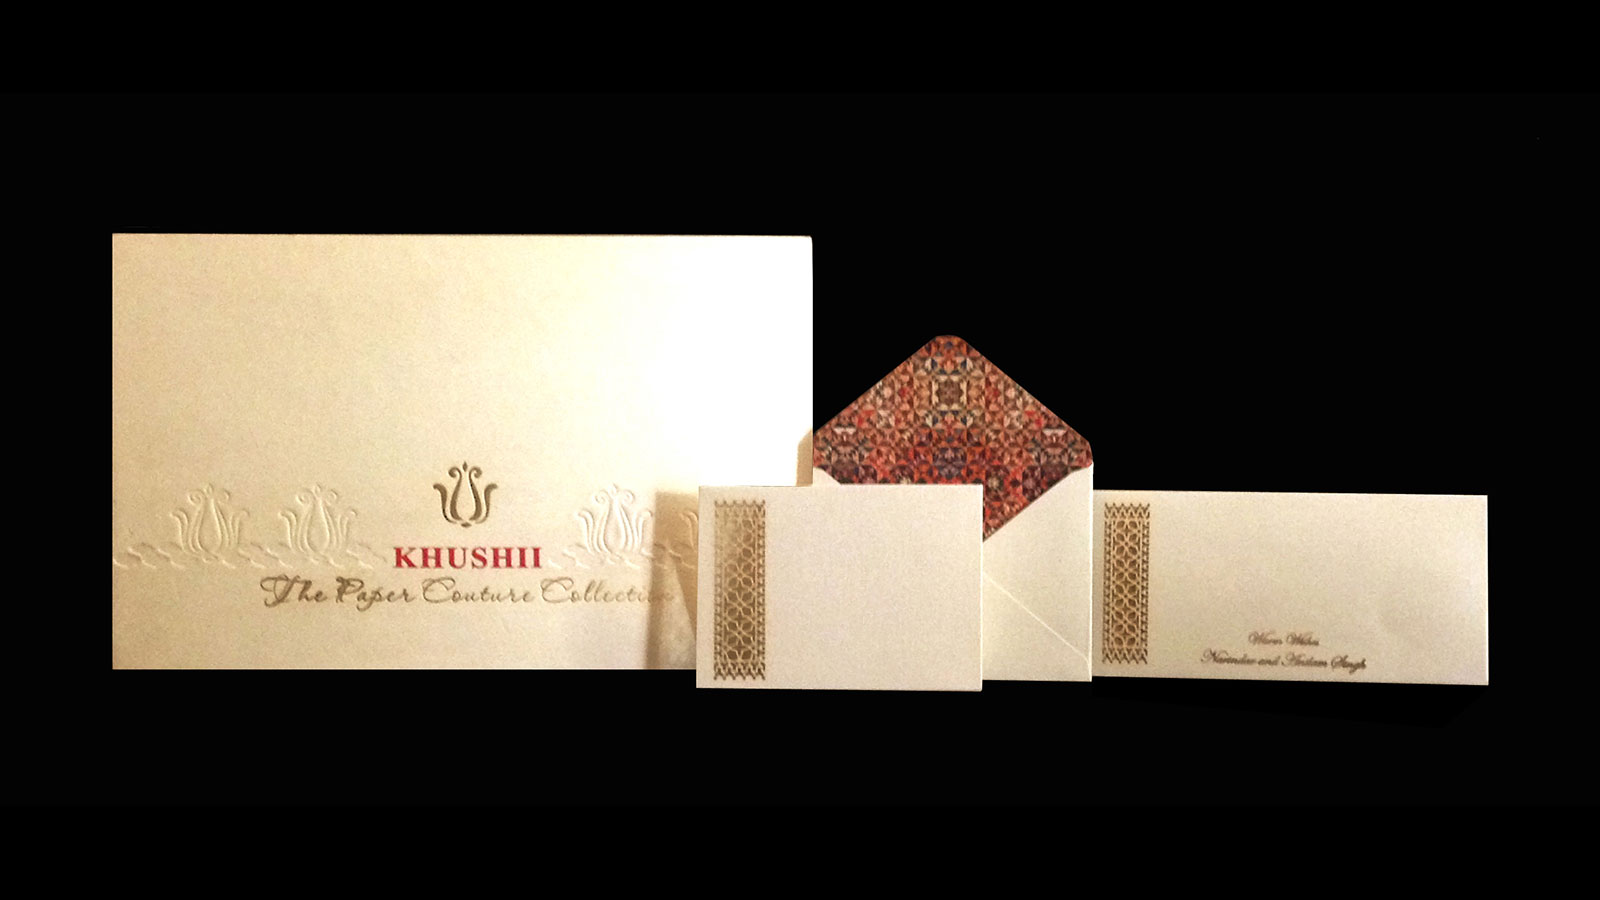 Khushii Invitations